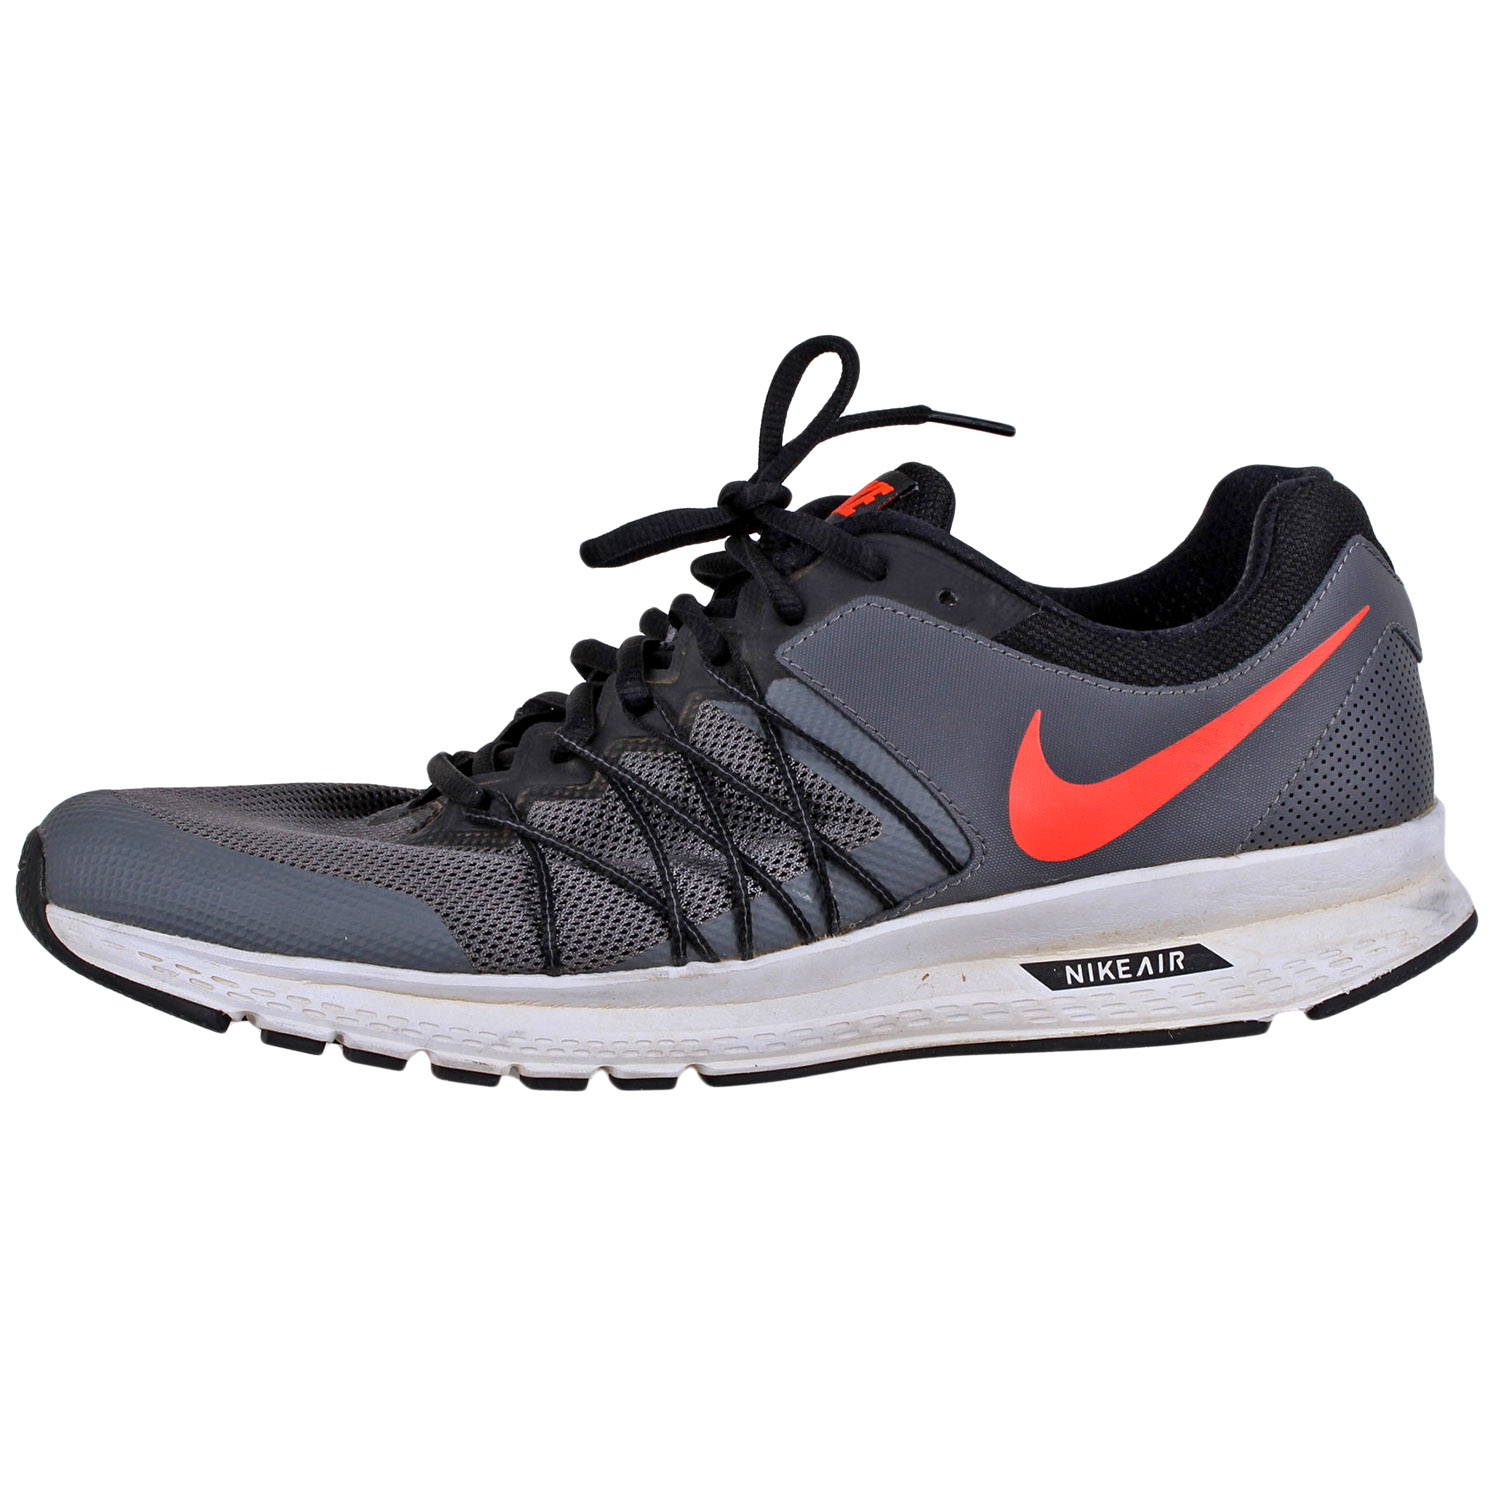 new arrival 3bb1c 2d31d Details about Nike Mens Air Relentless 6 Running Shoes 843836 Dark  Grey Orange sz10.5